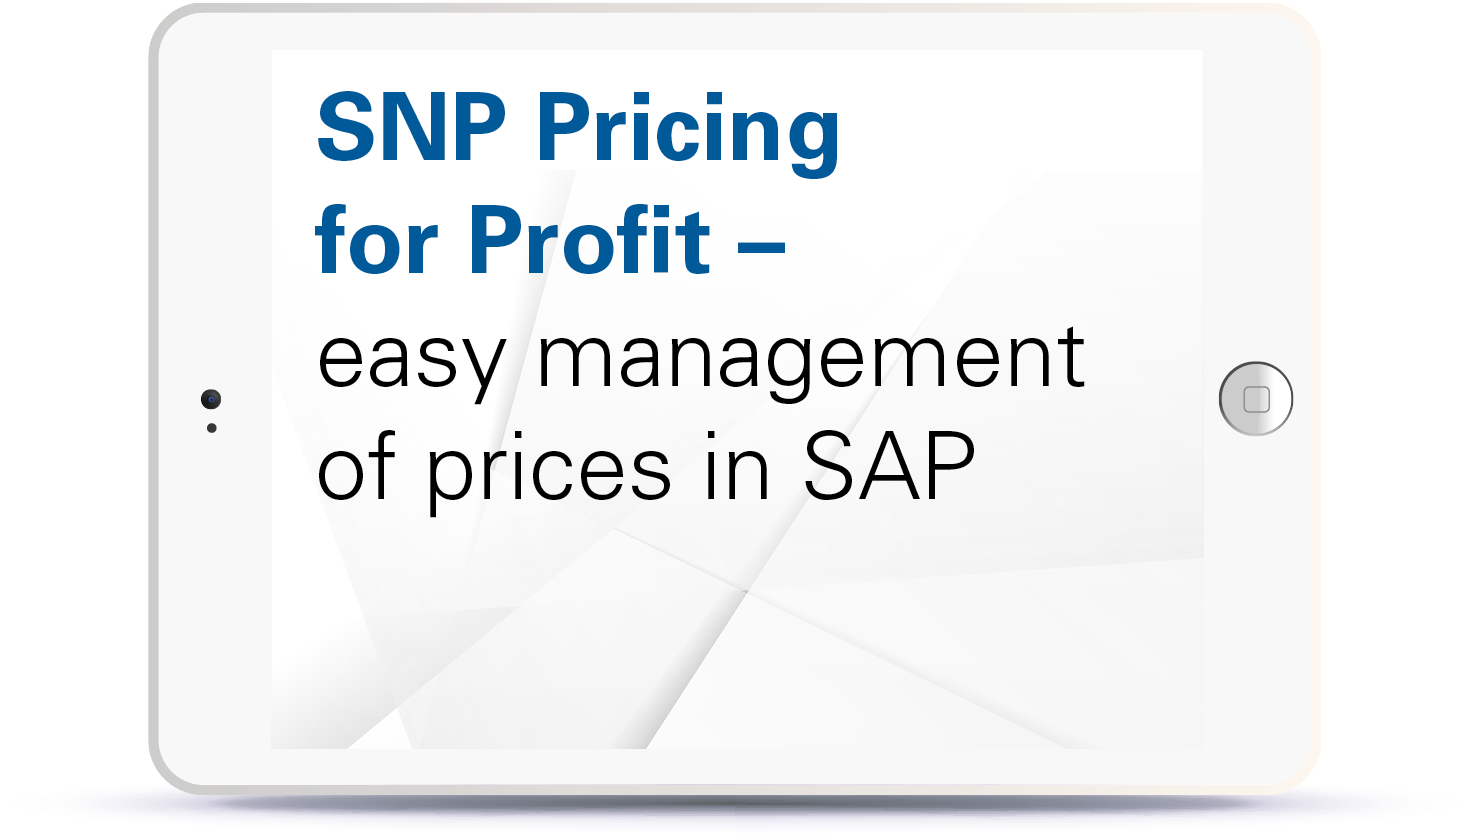 04_SNP Pricing.png